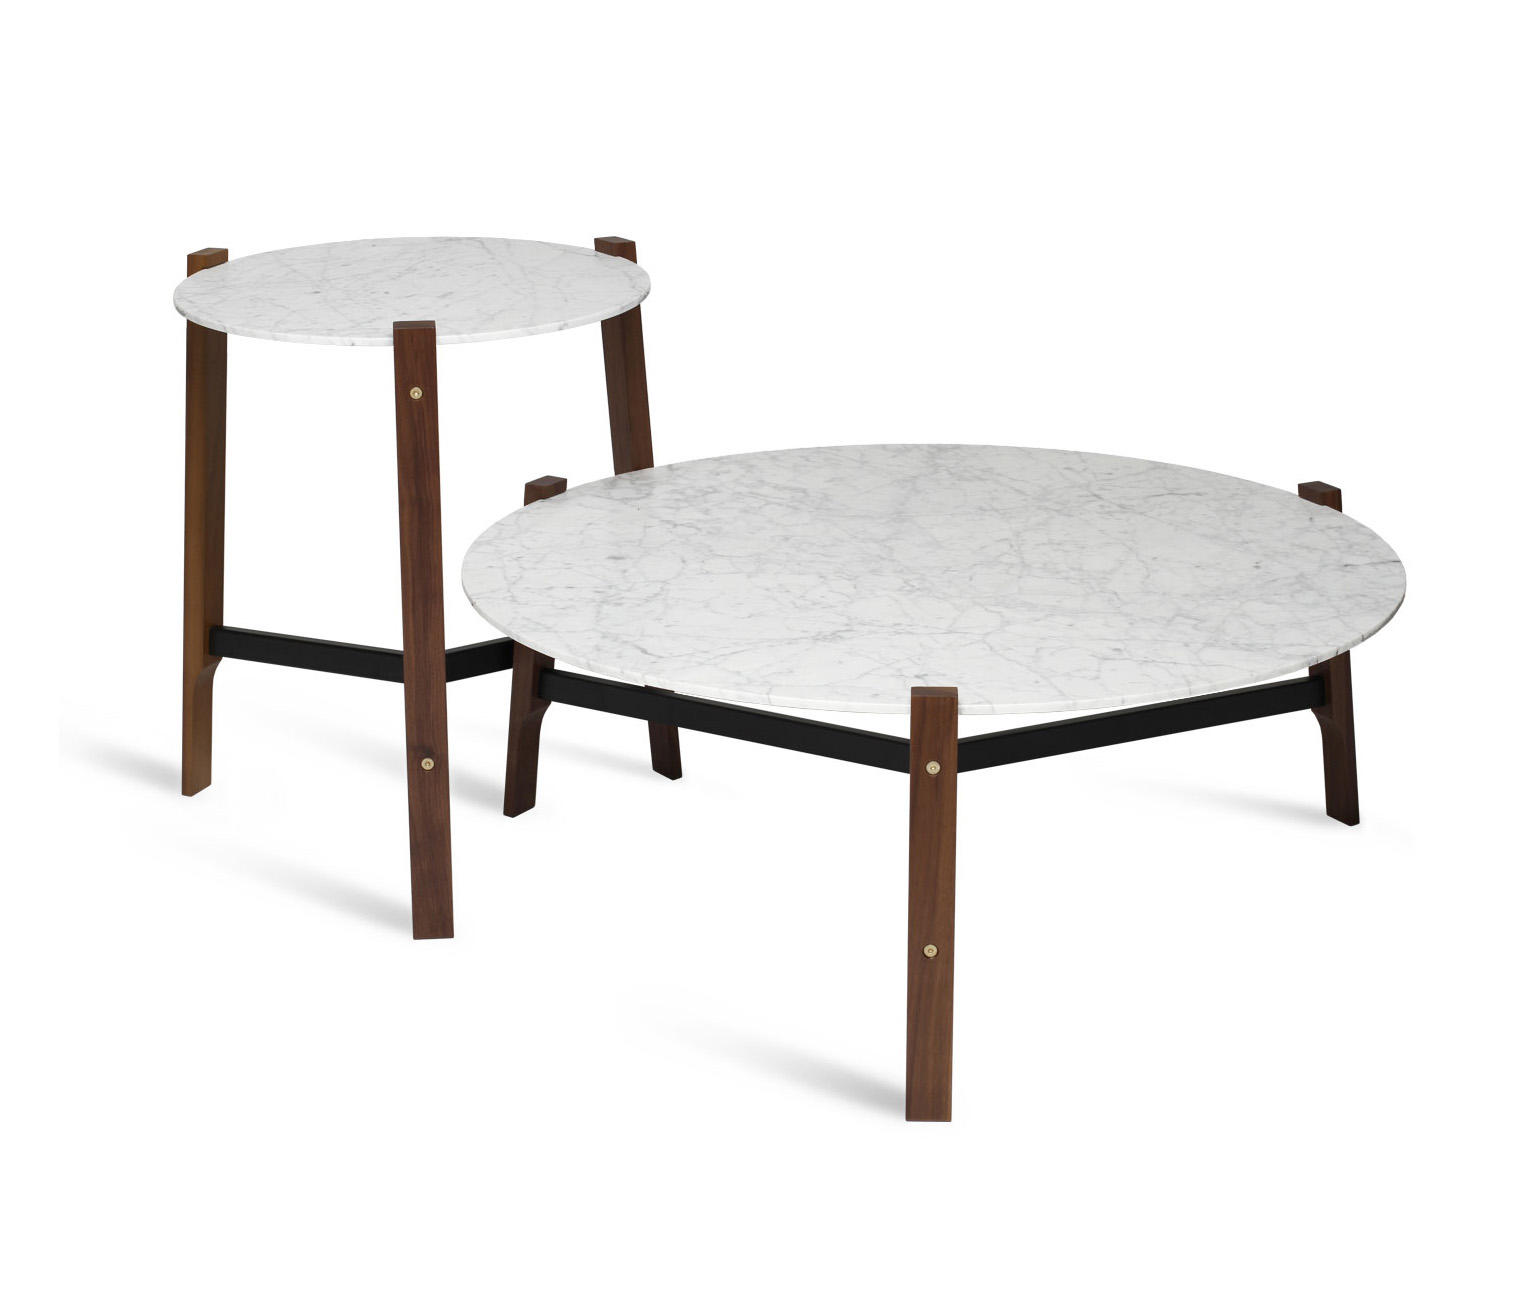 FREE RANGE COFFEE TABLE Lounge tables from Blu Dot